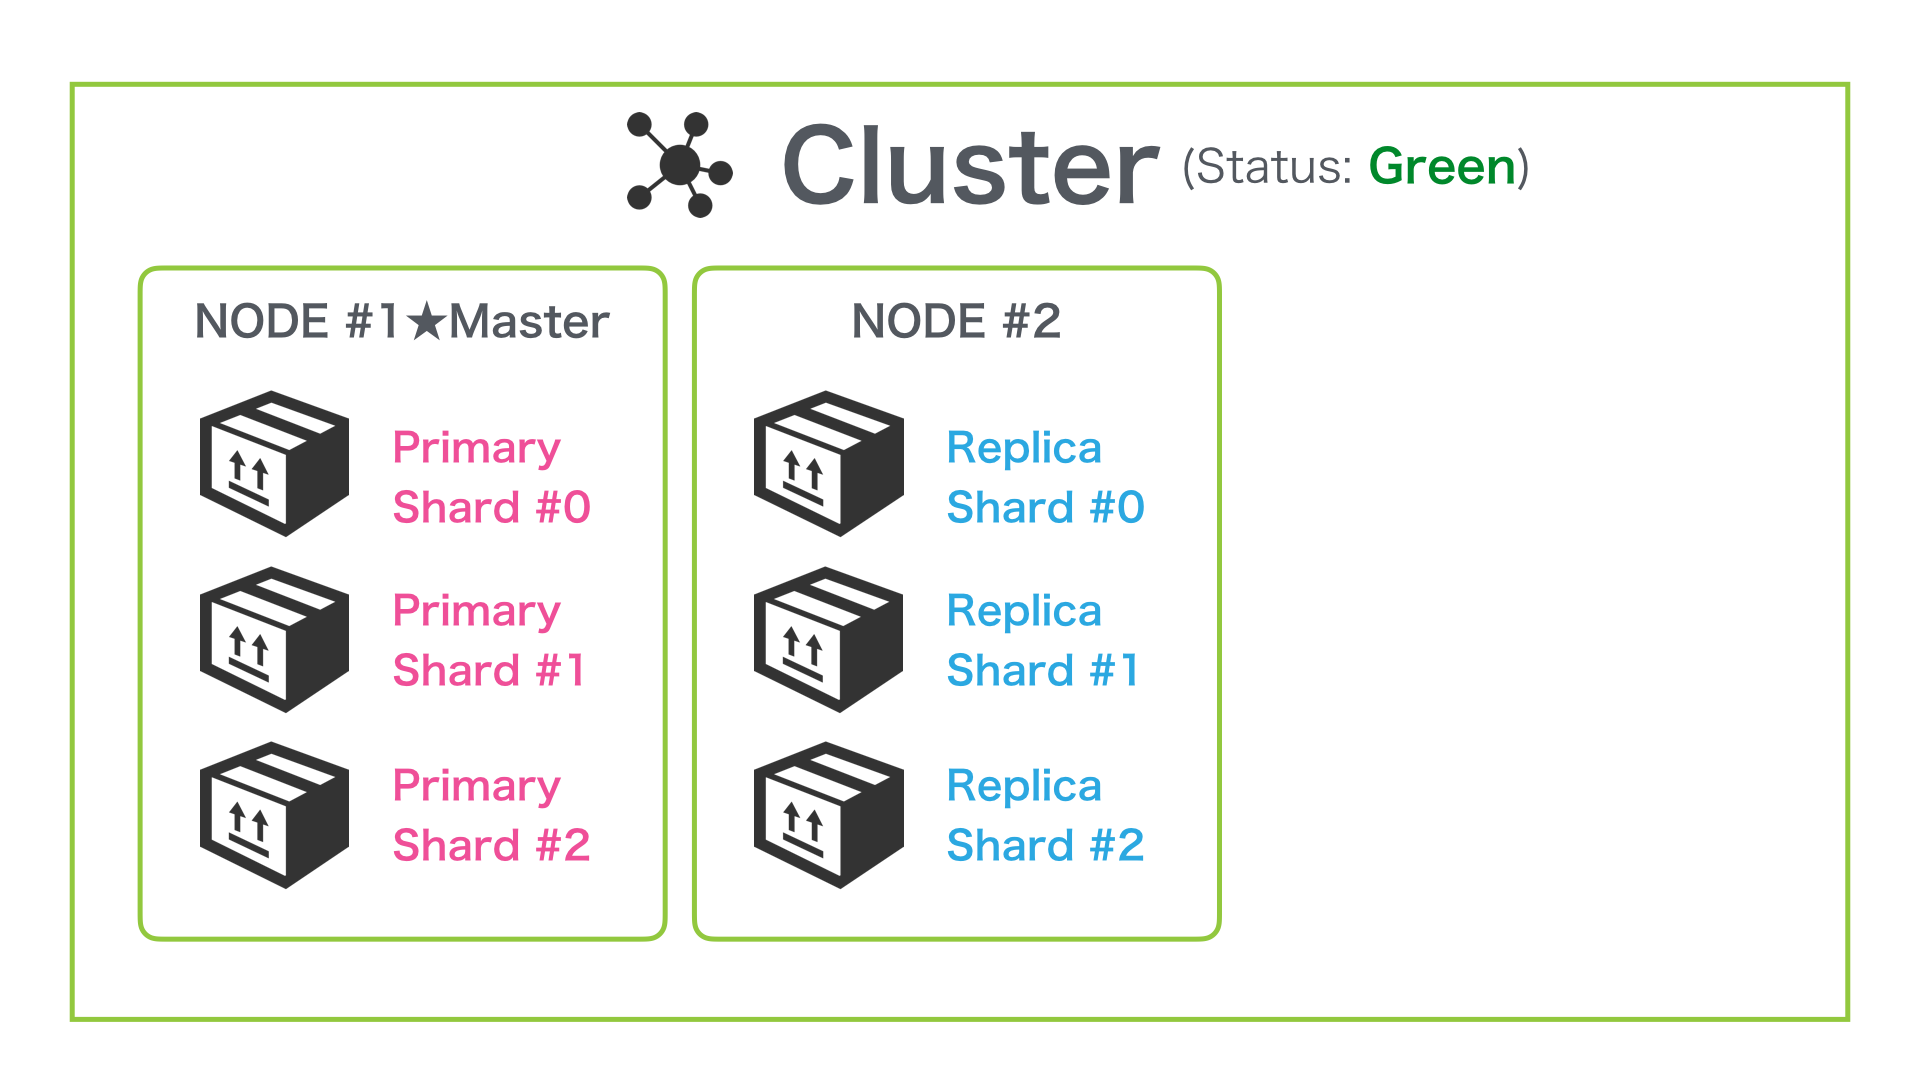 A two-node cluster